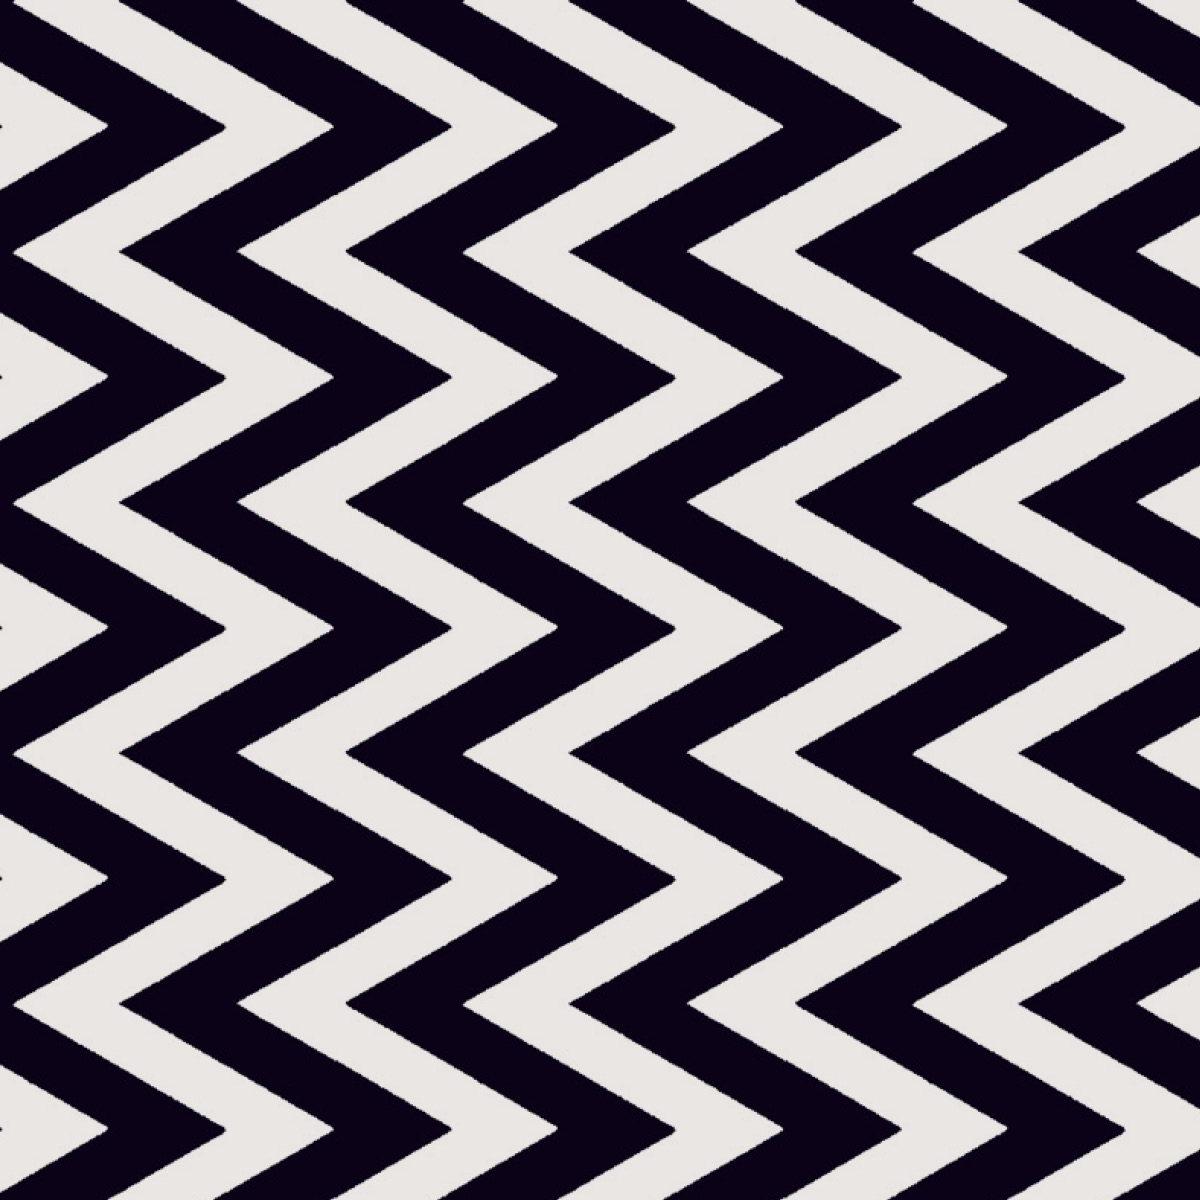 Arley House Chevron Fabric Swatch